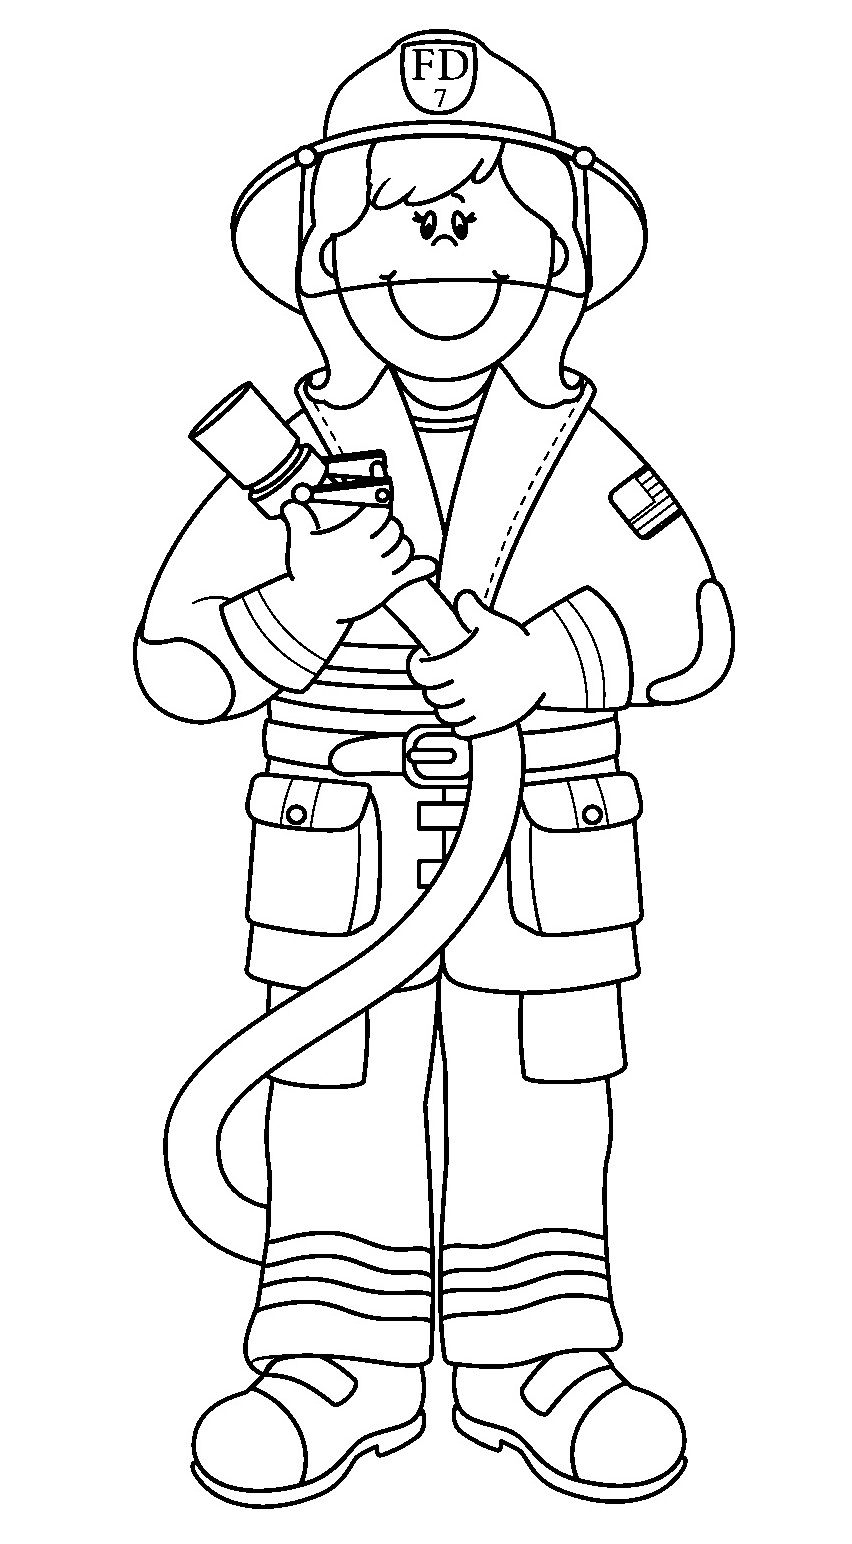 Fire Department Coloring Pages  Download 17e - Free For Children